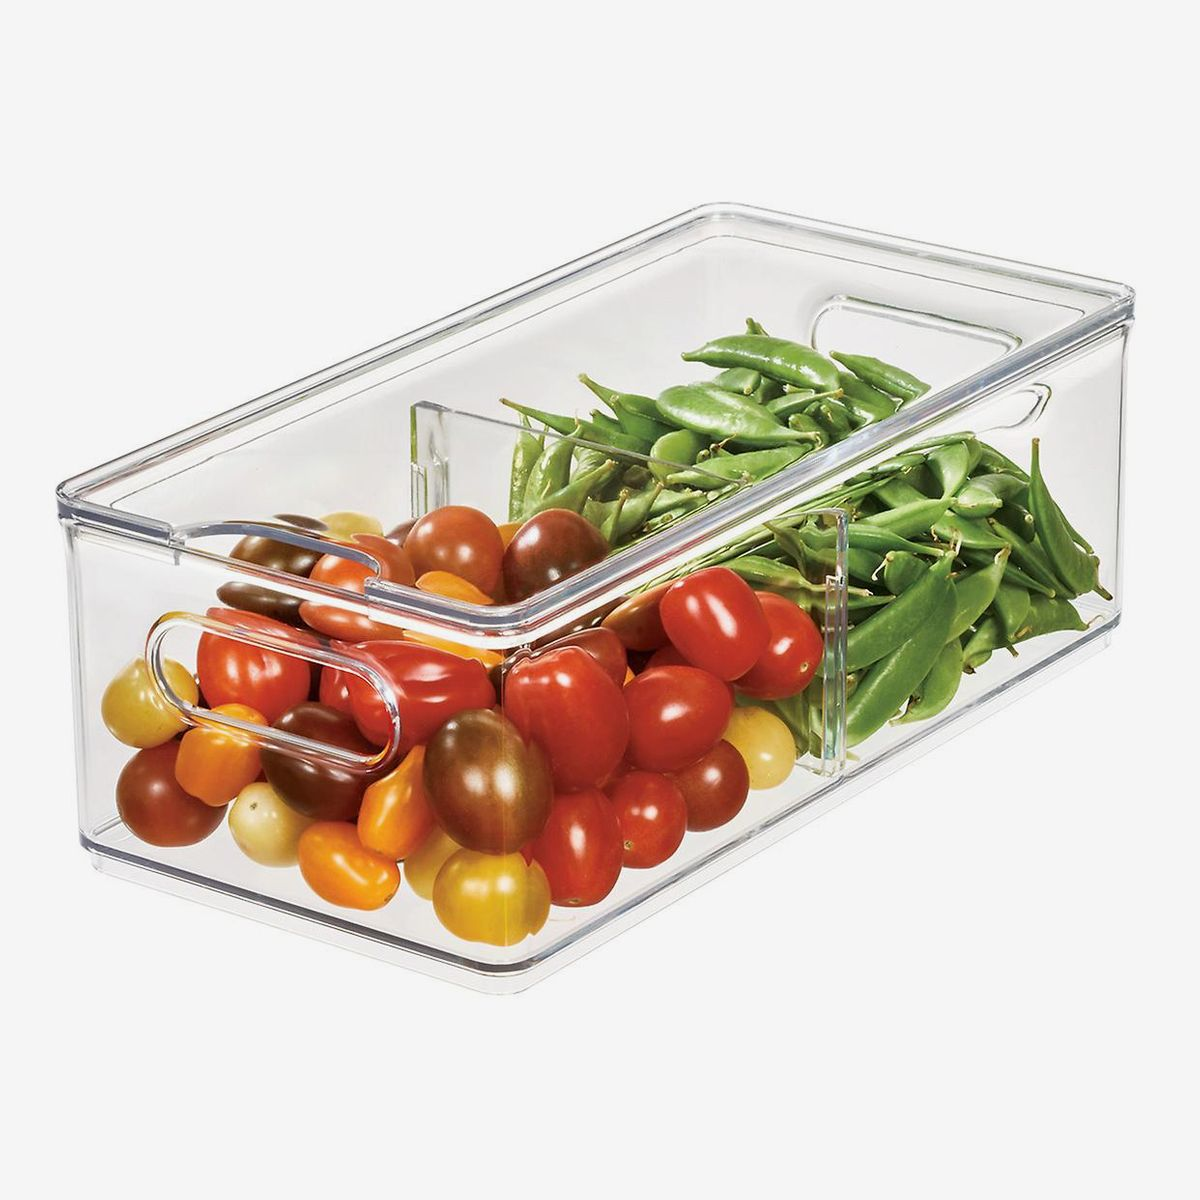 A clear storage bin with a divider containing tomatoes and snap peas